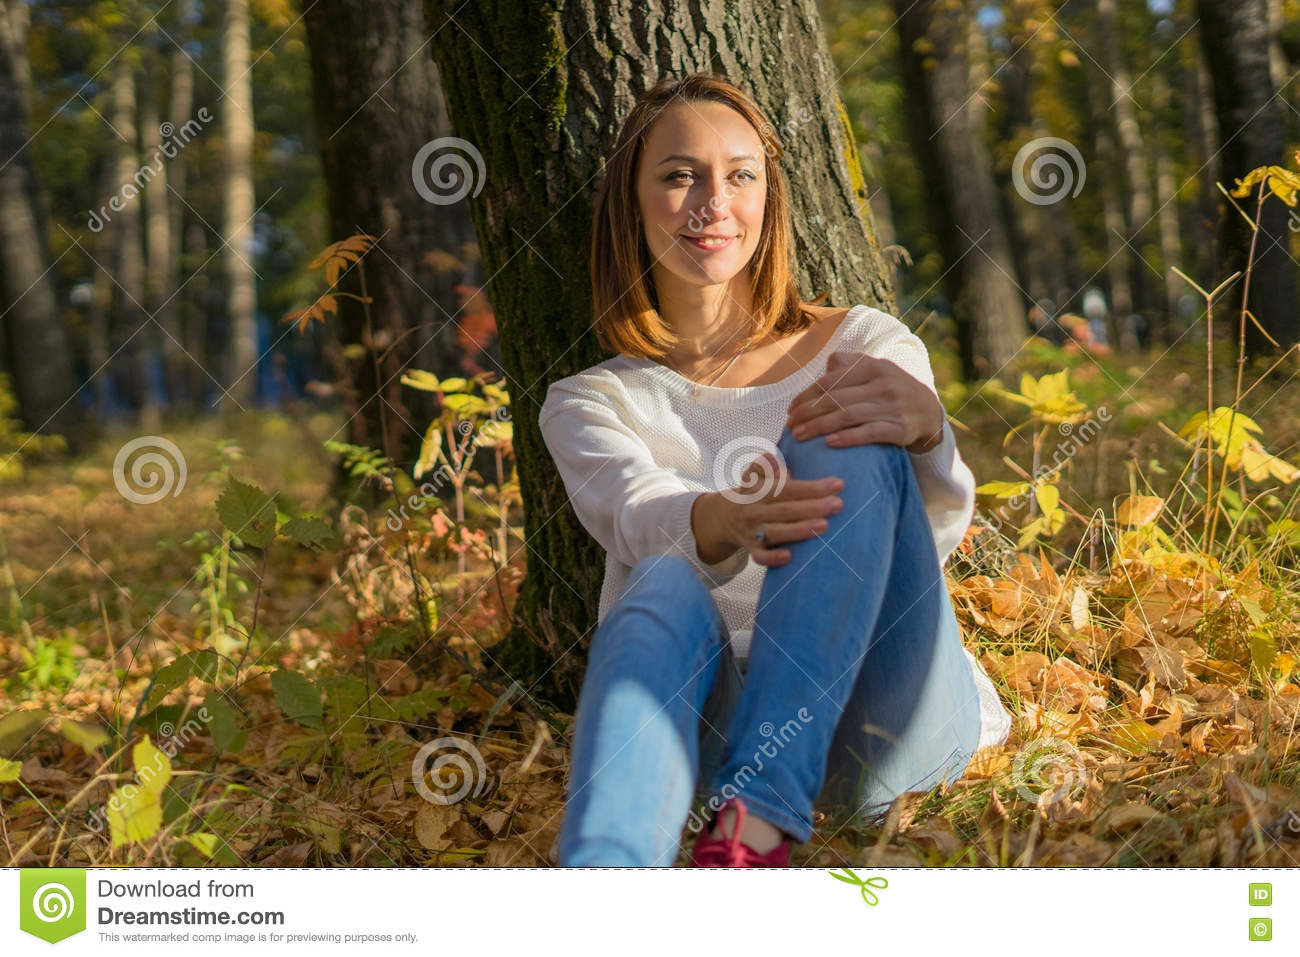 Girl sitting under a tree in the forest